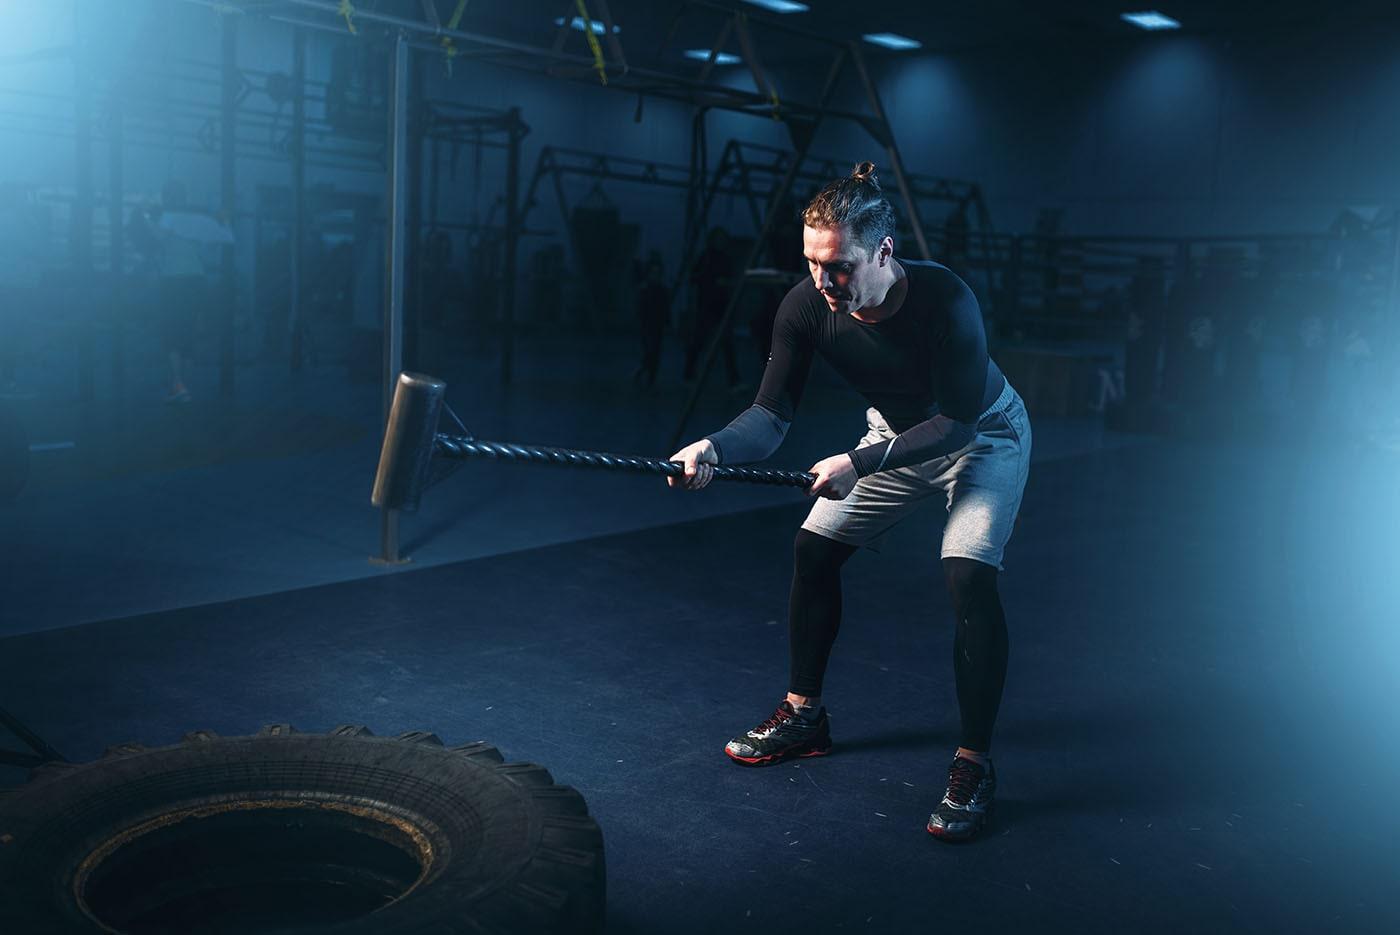 training in gym man with sledgehammer hits tire PC3UH98 min